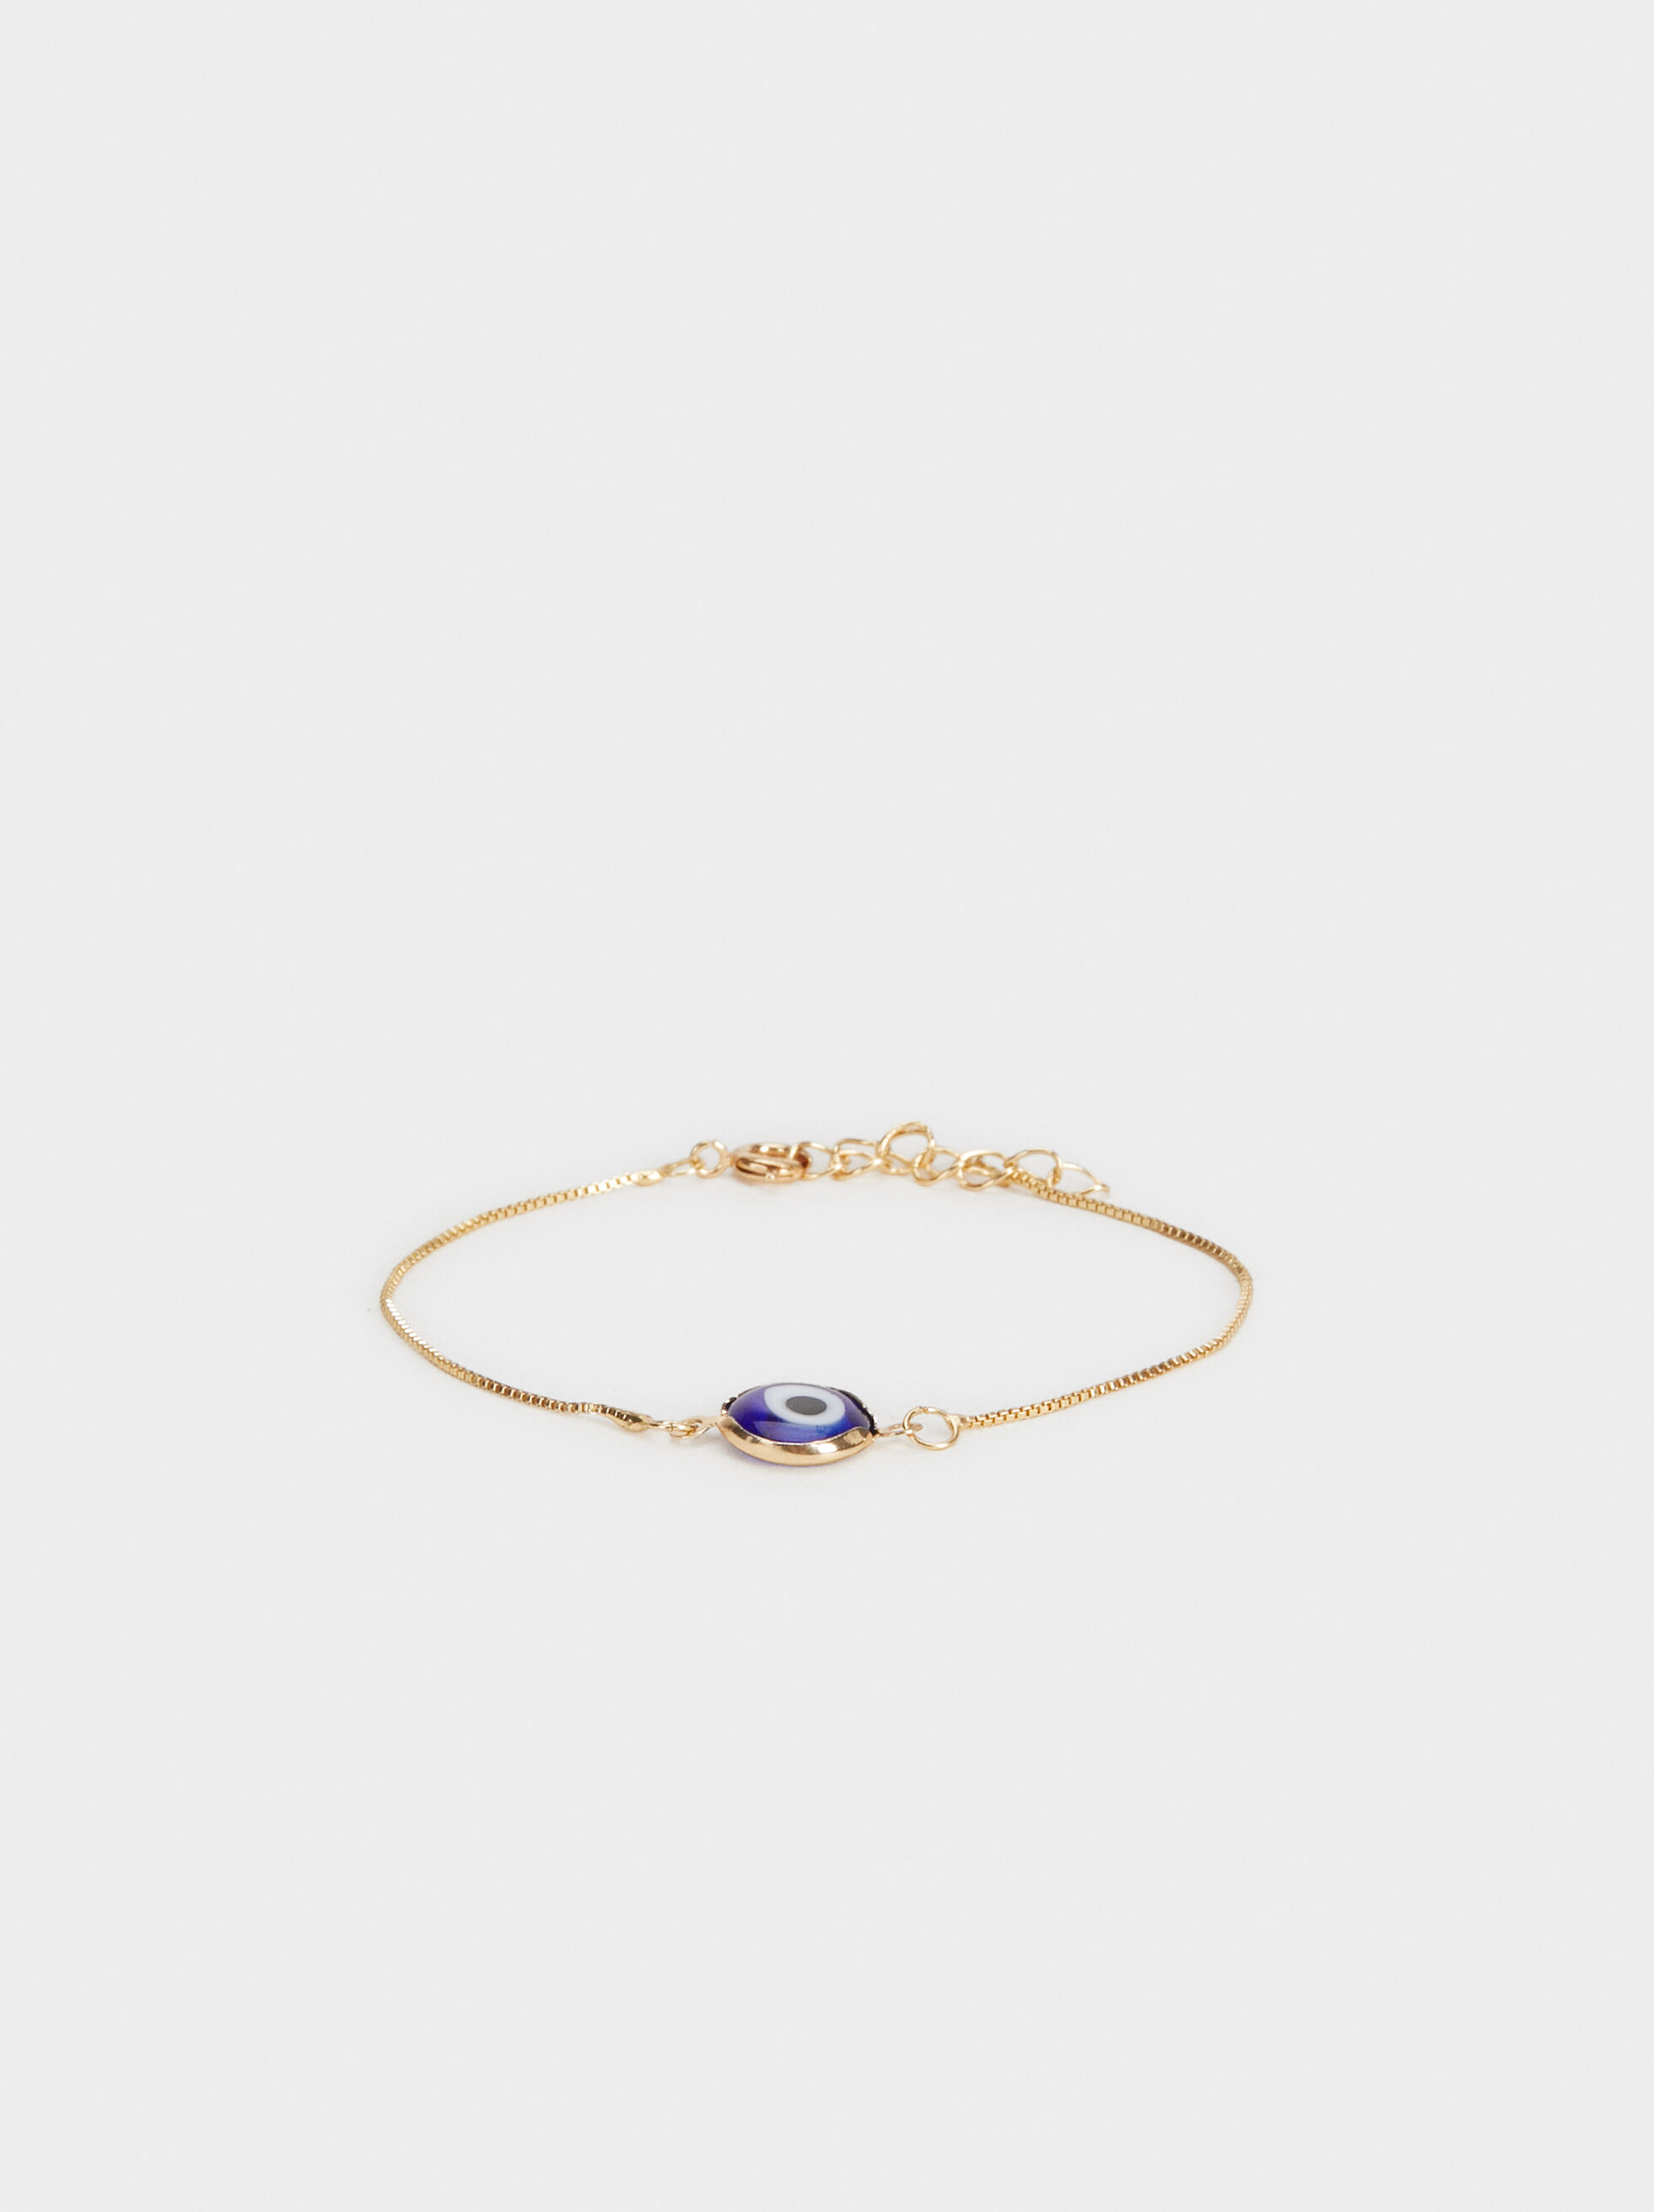 Gold Bracelet With Eye Charm, Blue, hi-res